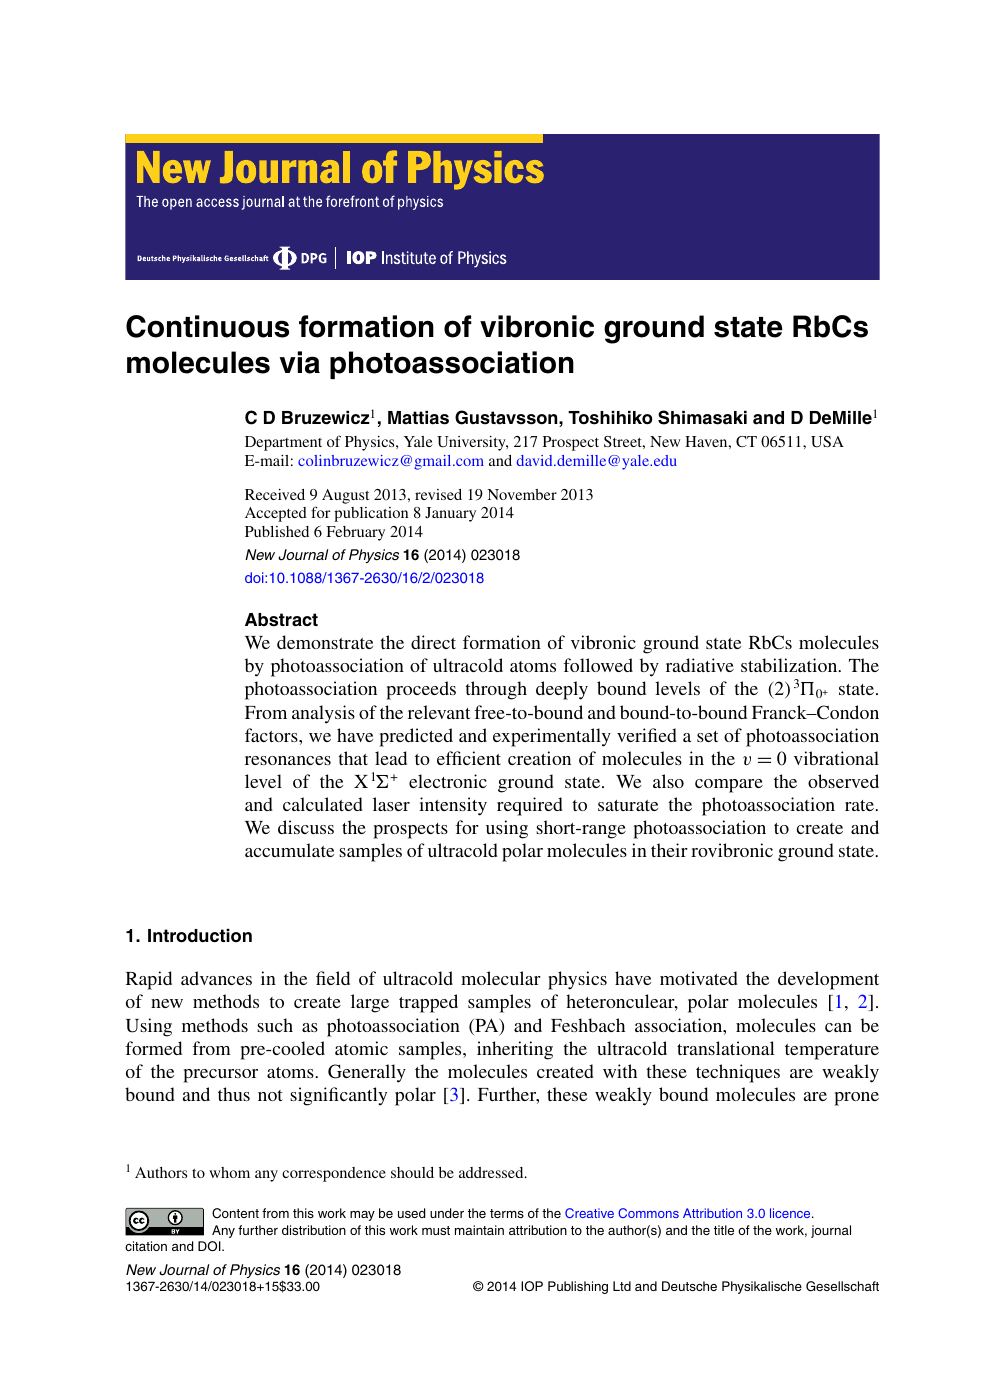 Continuous formation of vibronic ground state RbCs molecules